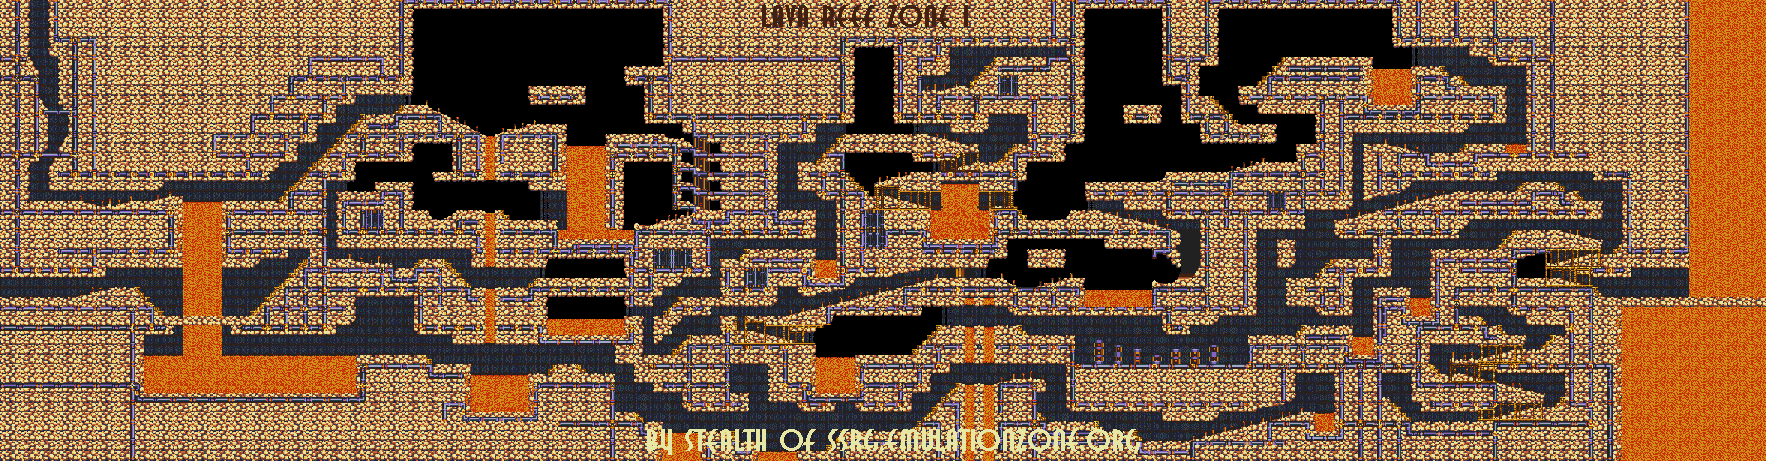 Level Maps For Sonic 2 3 Amp K Things Of Interest